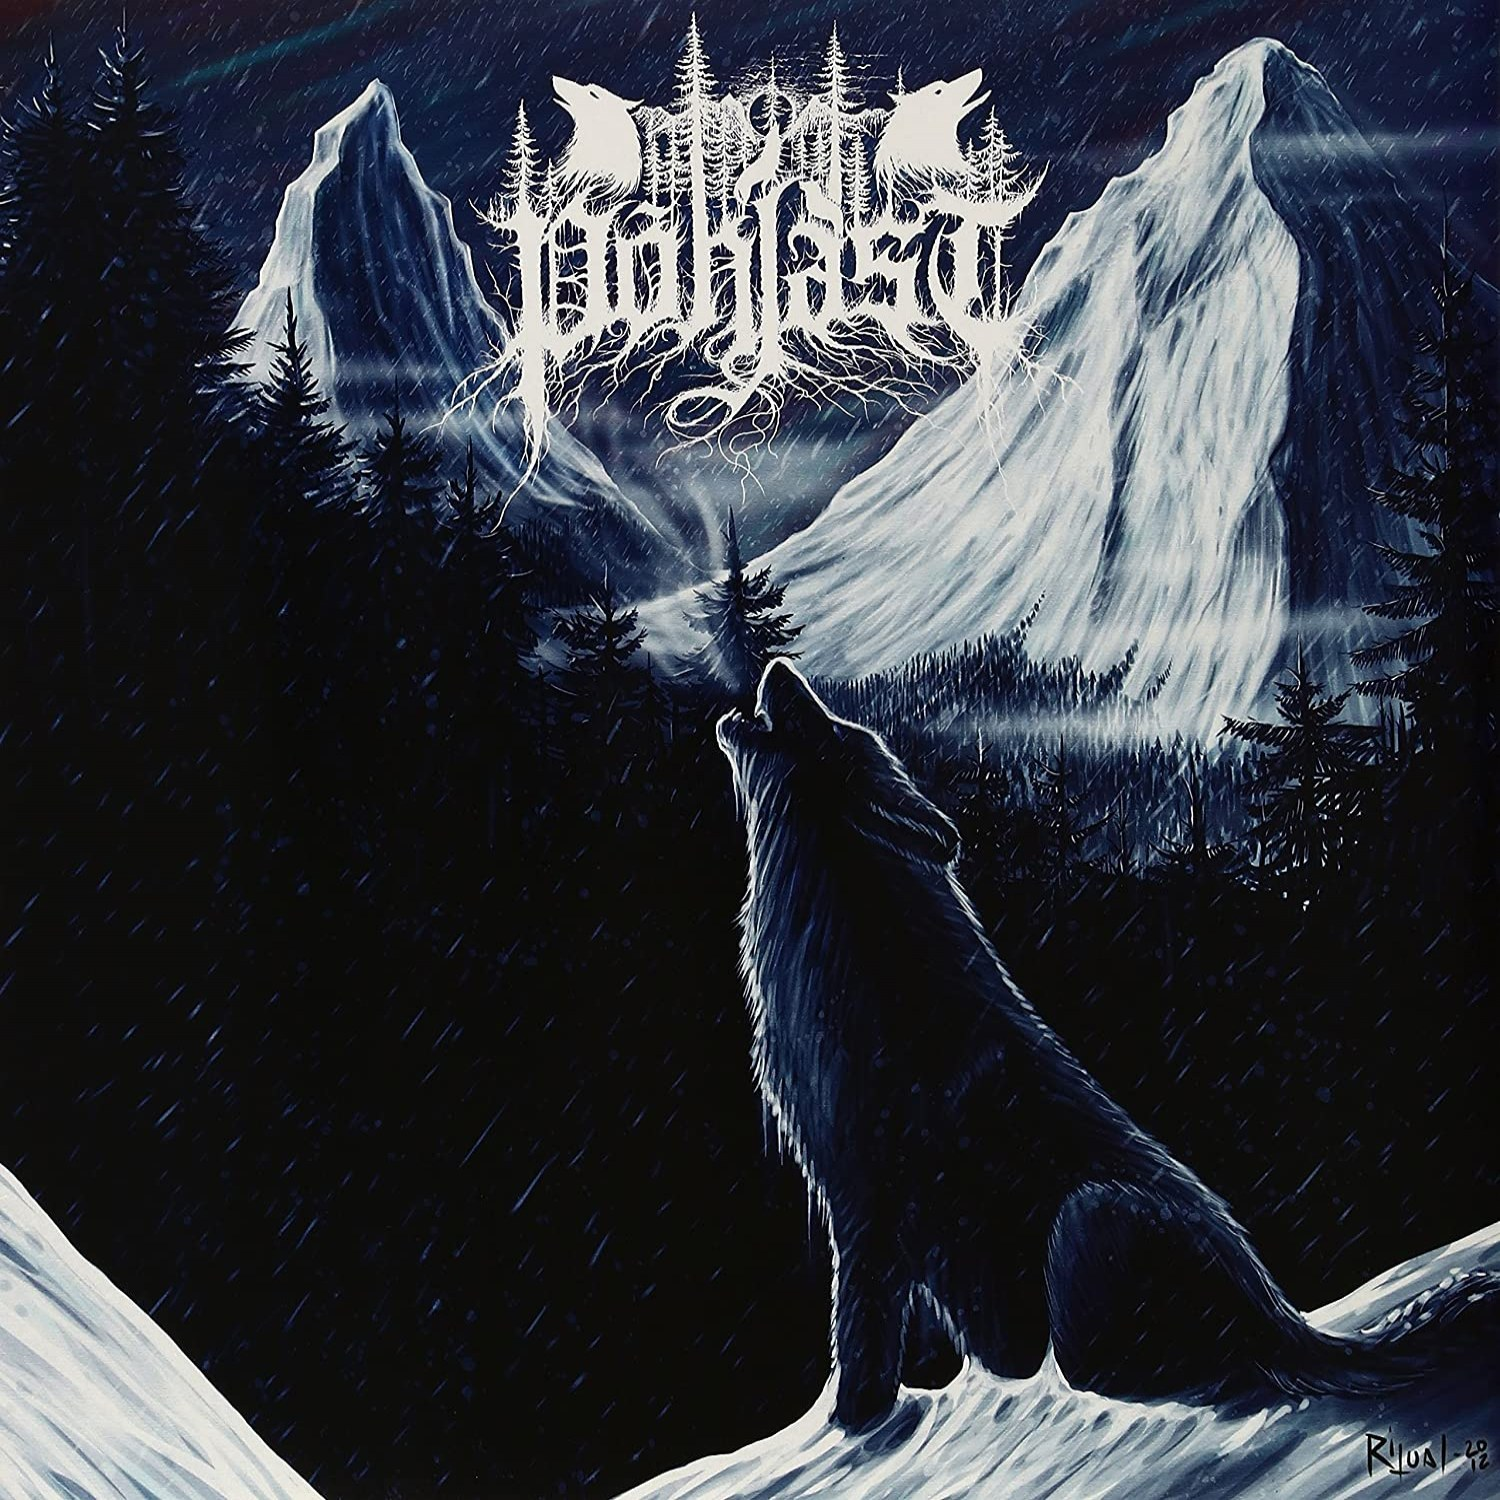 Review for Põhjast - Thou Strong, Stern Death